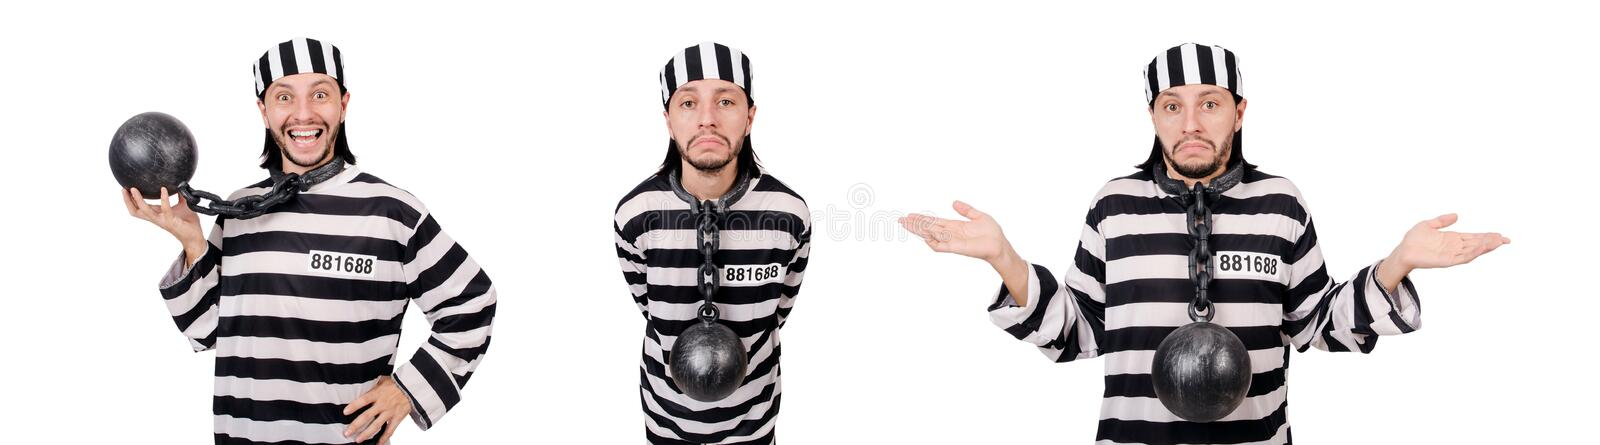 The prison inmate isolated on the white background. Prison inmate isolated on the white background royalty free stock images